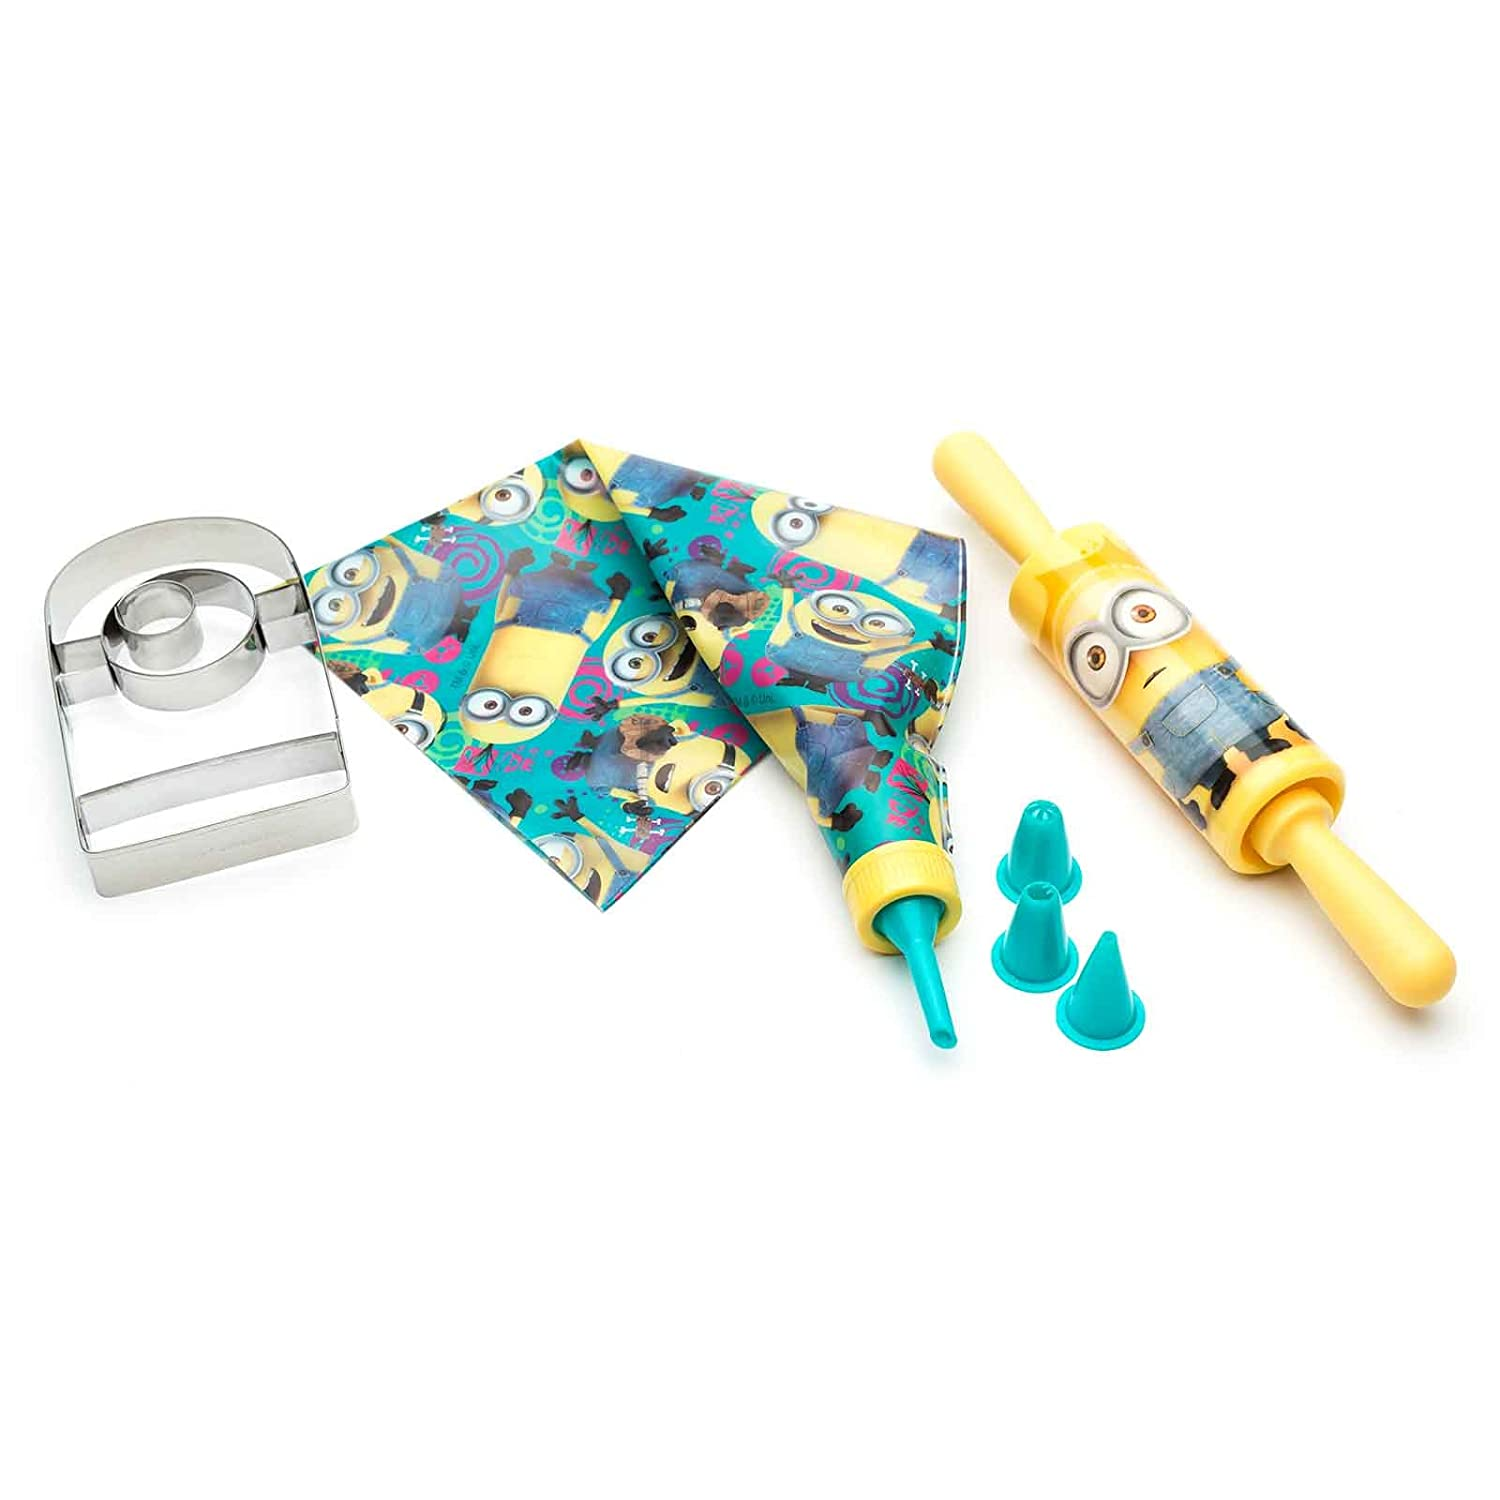 Baking Set for Kids by Zak Designs Minions Tiny Chef Lets Make Cookies